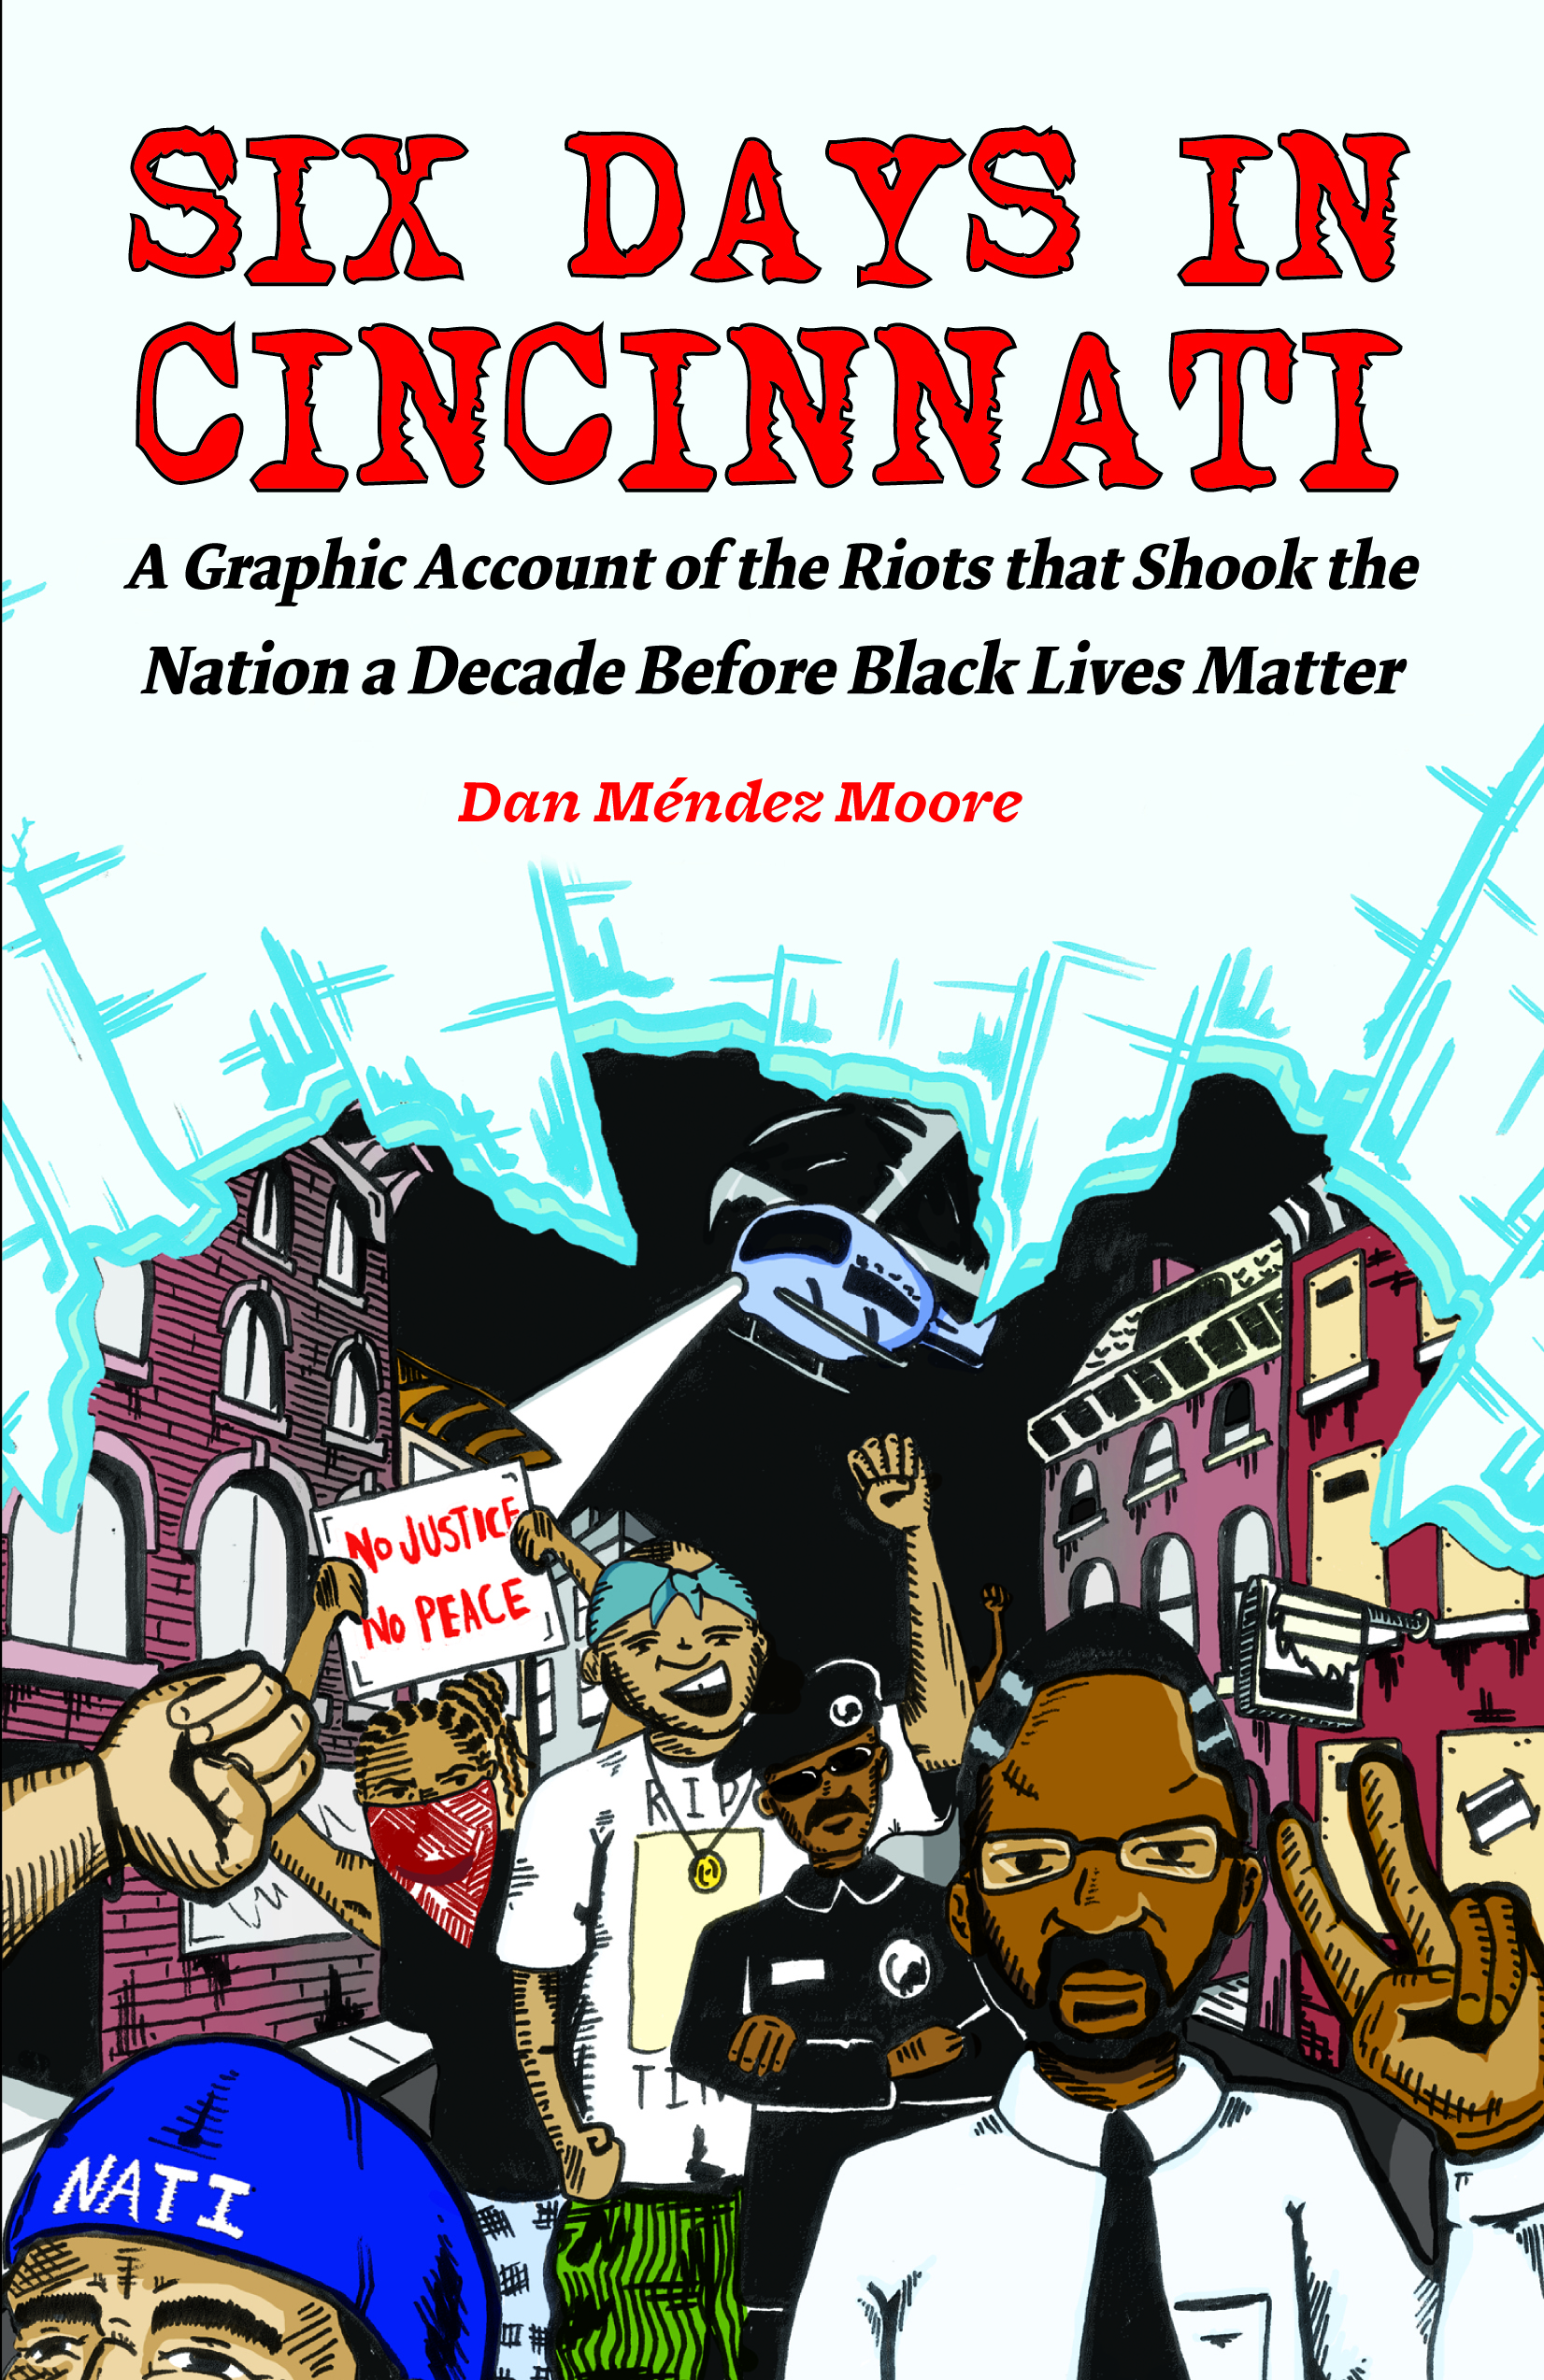 Six Days in Cincinnati: A Graphic Account of the Riots that Shook the Nation a Decade Before Black Lives Matter By Dan Méndez Moore